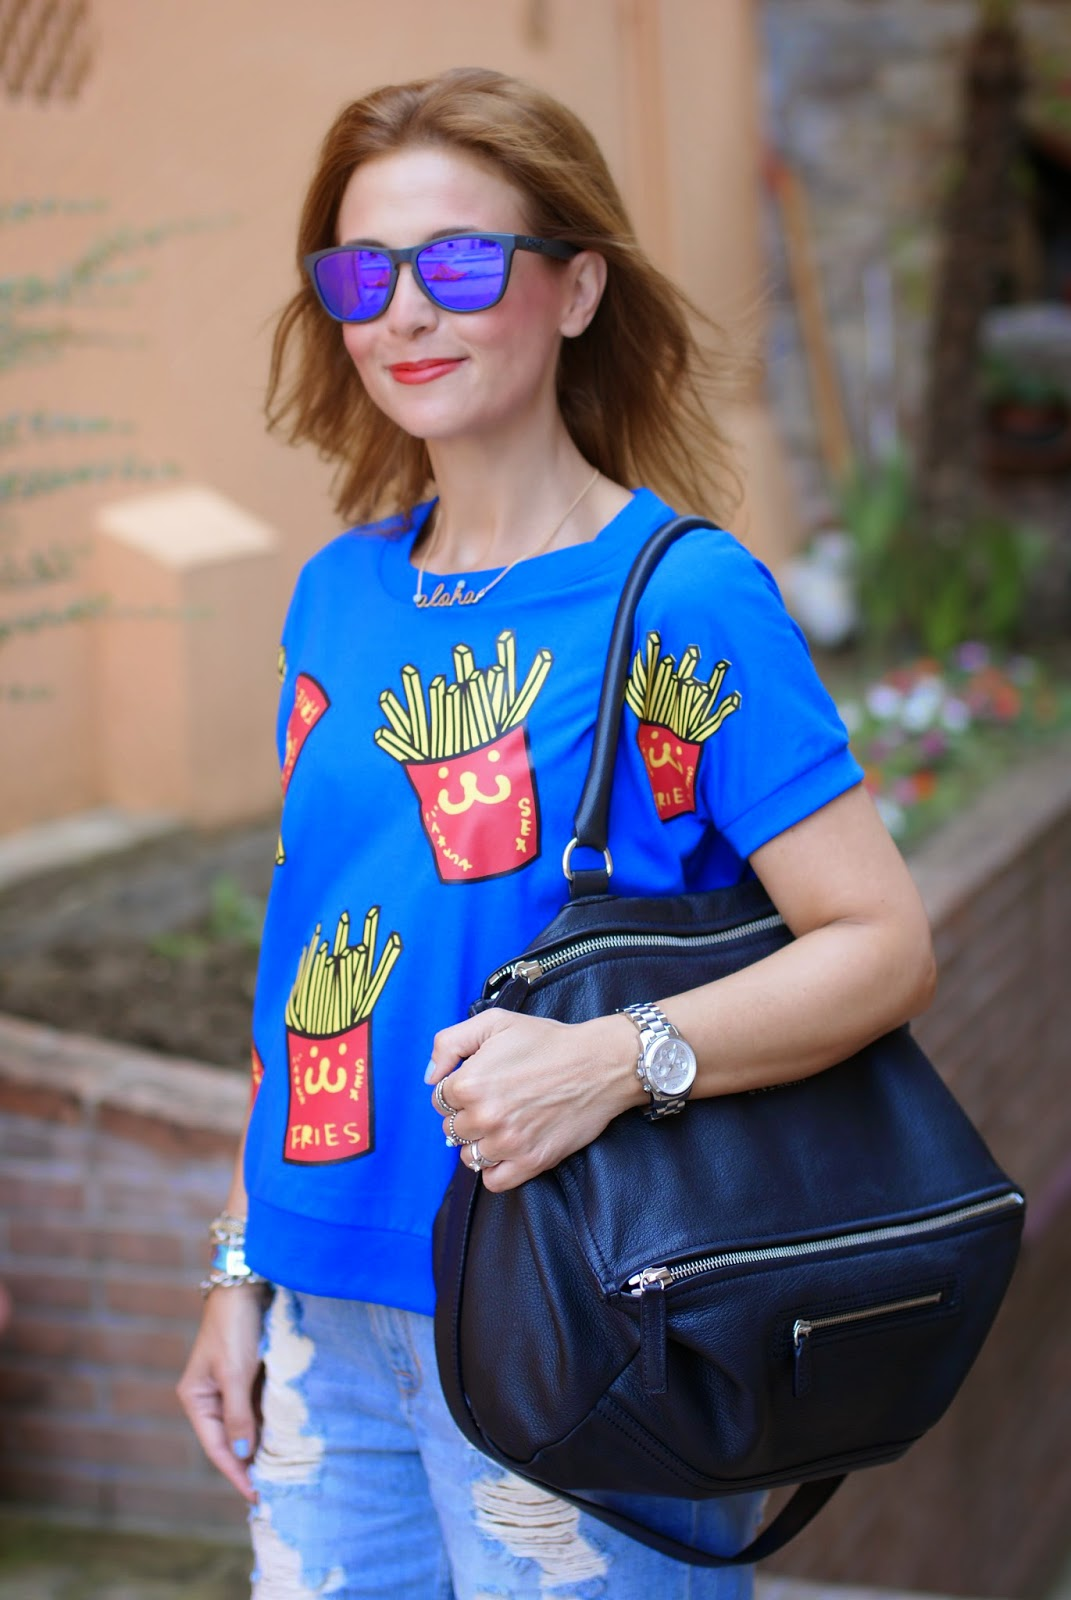 Blackfive french fries print blouse, fries print trend, patatine fritte stampa, Givenchy Pandora, Oakley sunglasse, Fashion and Cookies, fashion blogger